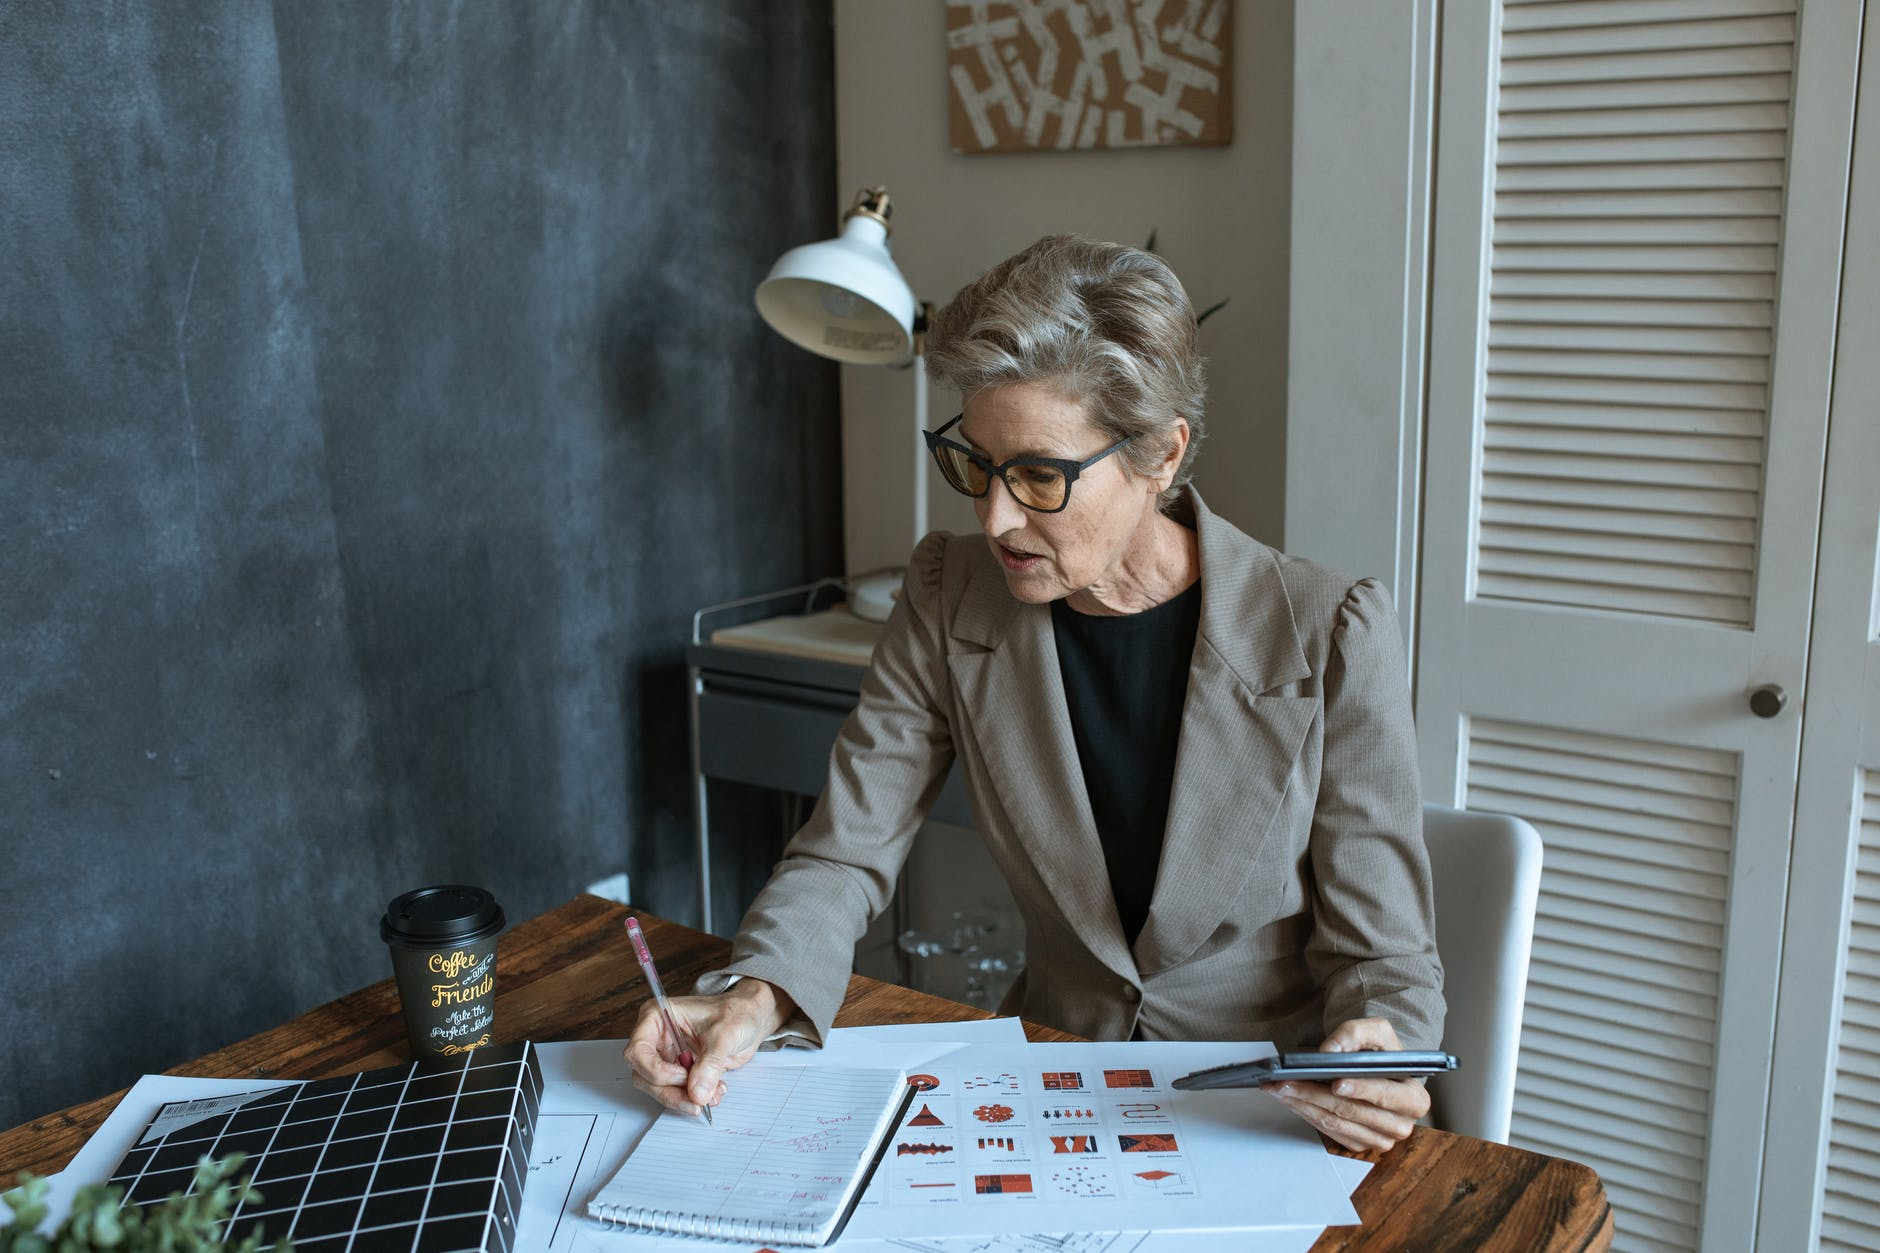 focused businesswoman writing in notebook during work in office